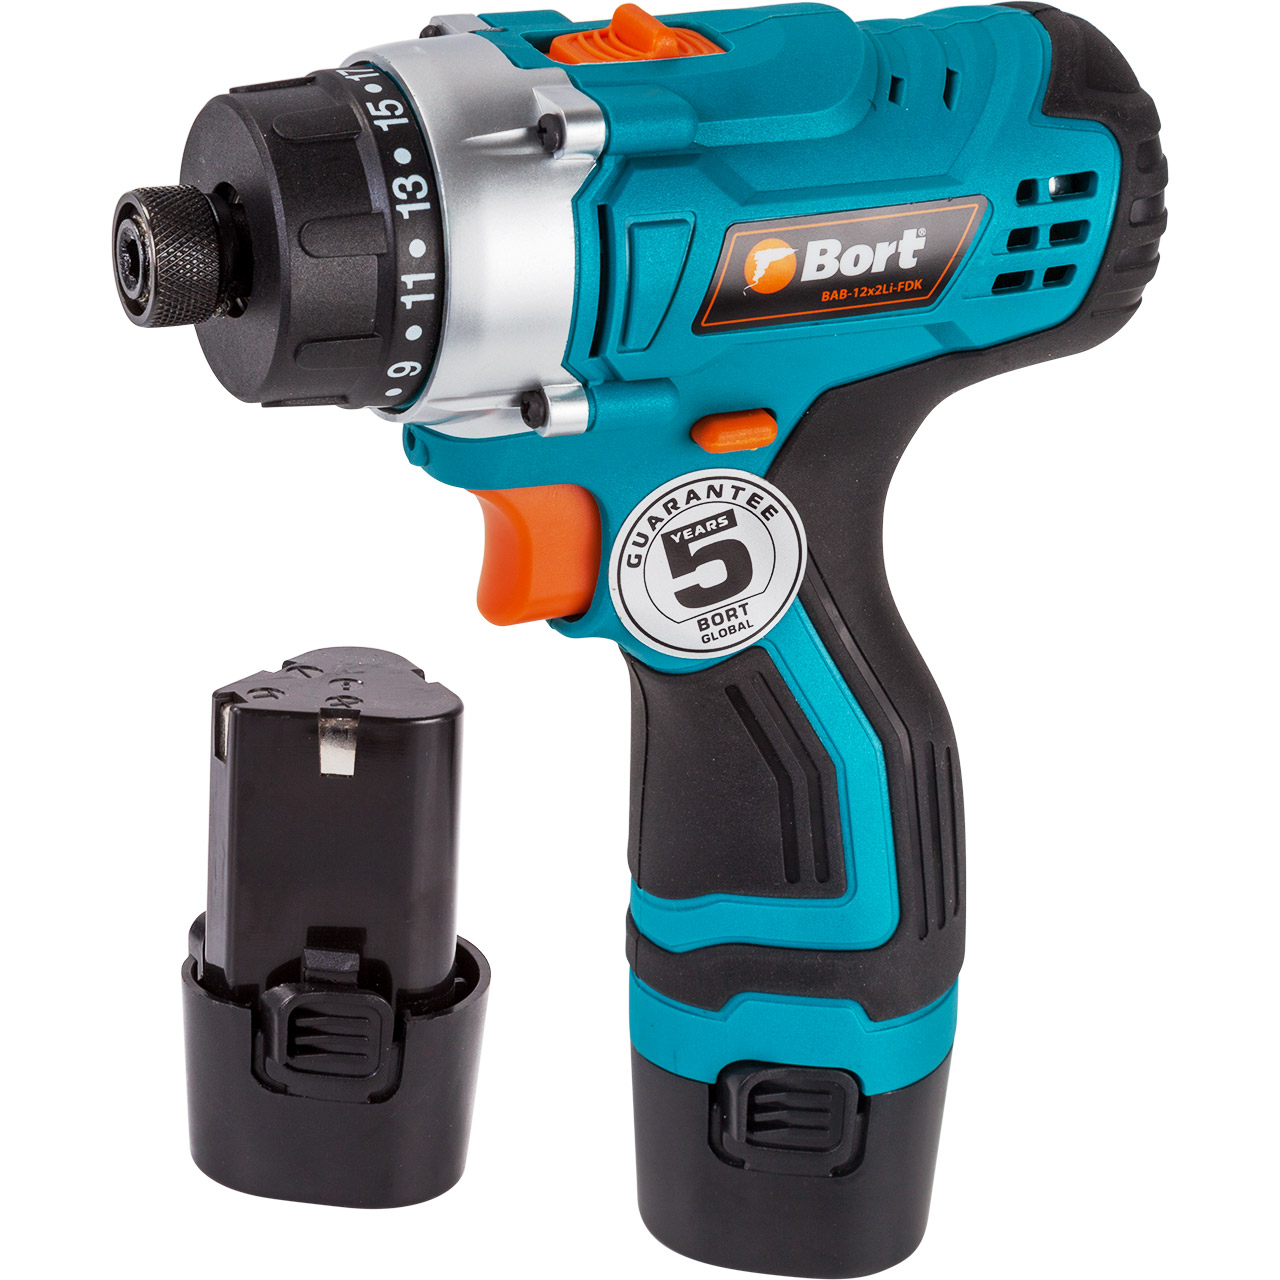 12V Bort Li-Ion Lithium Battery Electric Drill Cordless Screwdriver Mini Drill Cordless Screwdriver Power Tools Cordless Drill BAB-12x2Li-FDK li ion battery electric cordless screwdriver set led light indicator and multi bits sockets